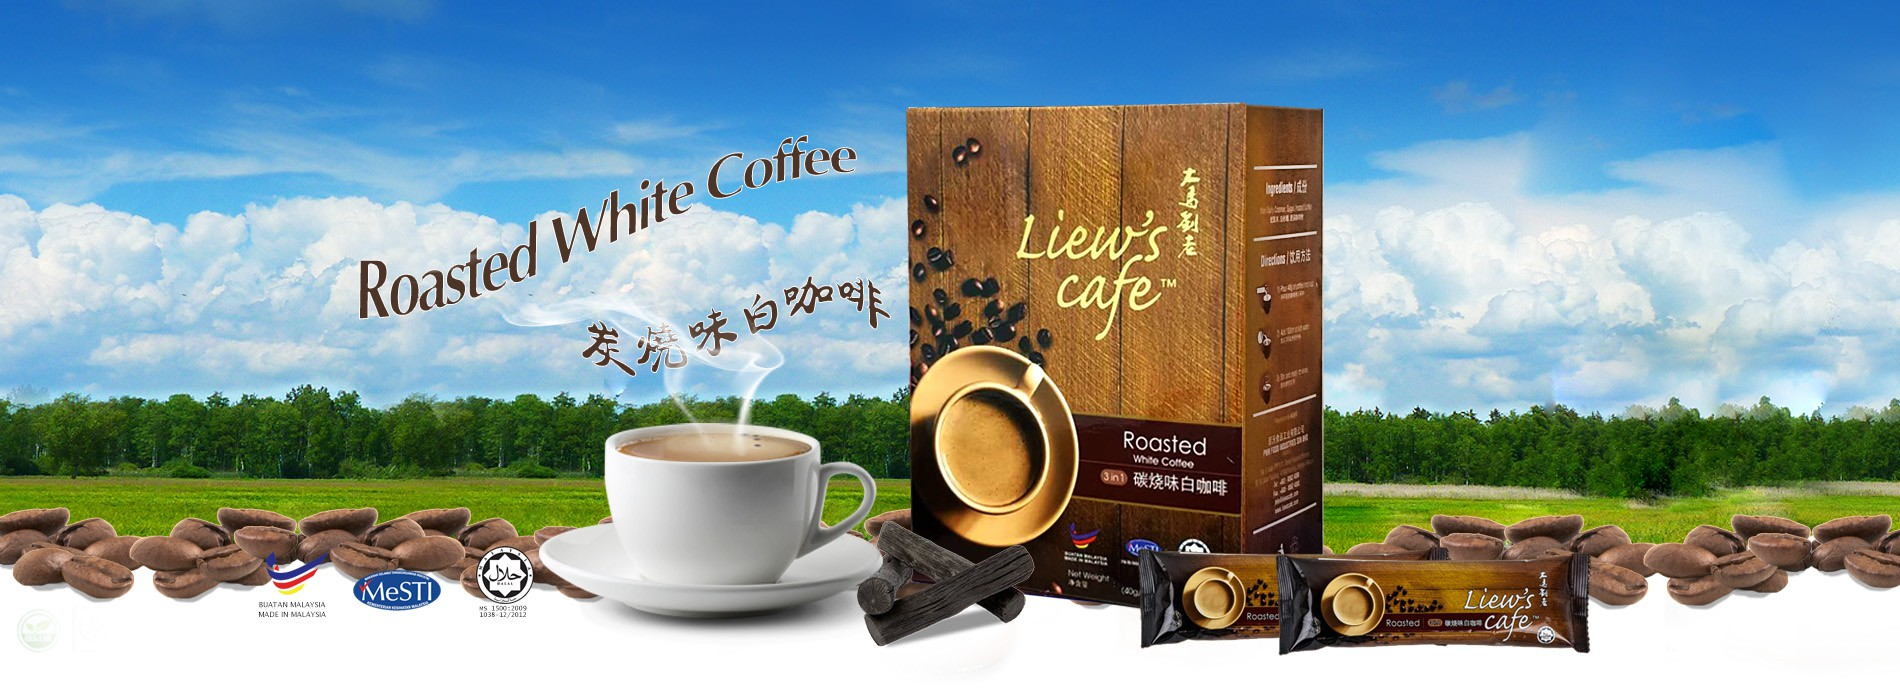 3-In-1 Roasted White Coffee 3合1碳烧味白咖啡​ | 3-In-1 Original White Coffee 3合1原味白咖啡 | 4-In-1 Durian White Coffee 4合1榴莲味白咖啡